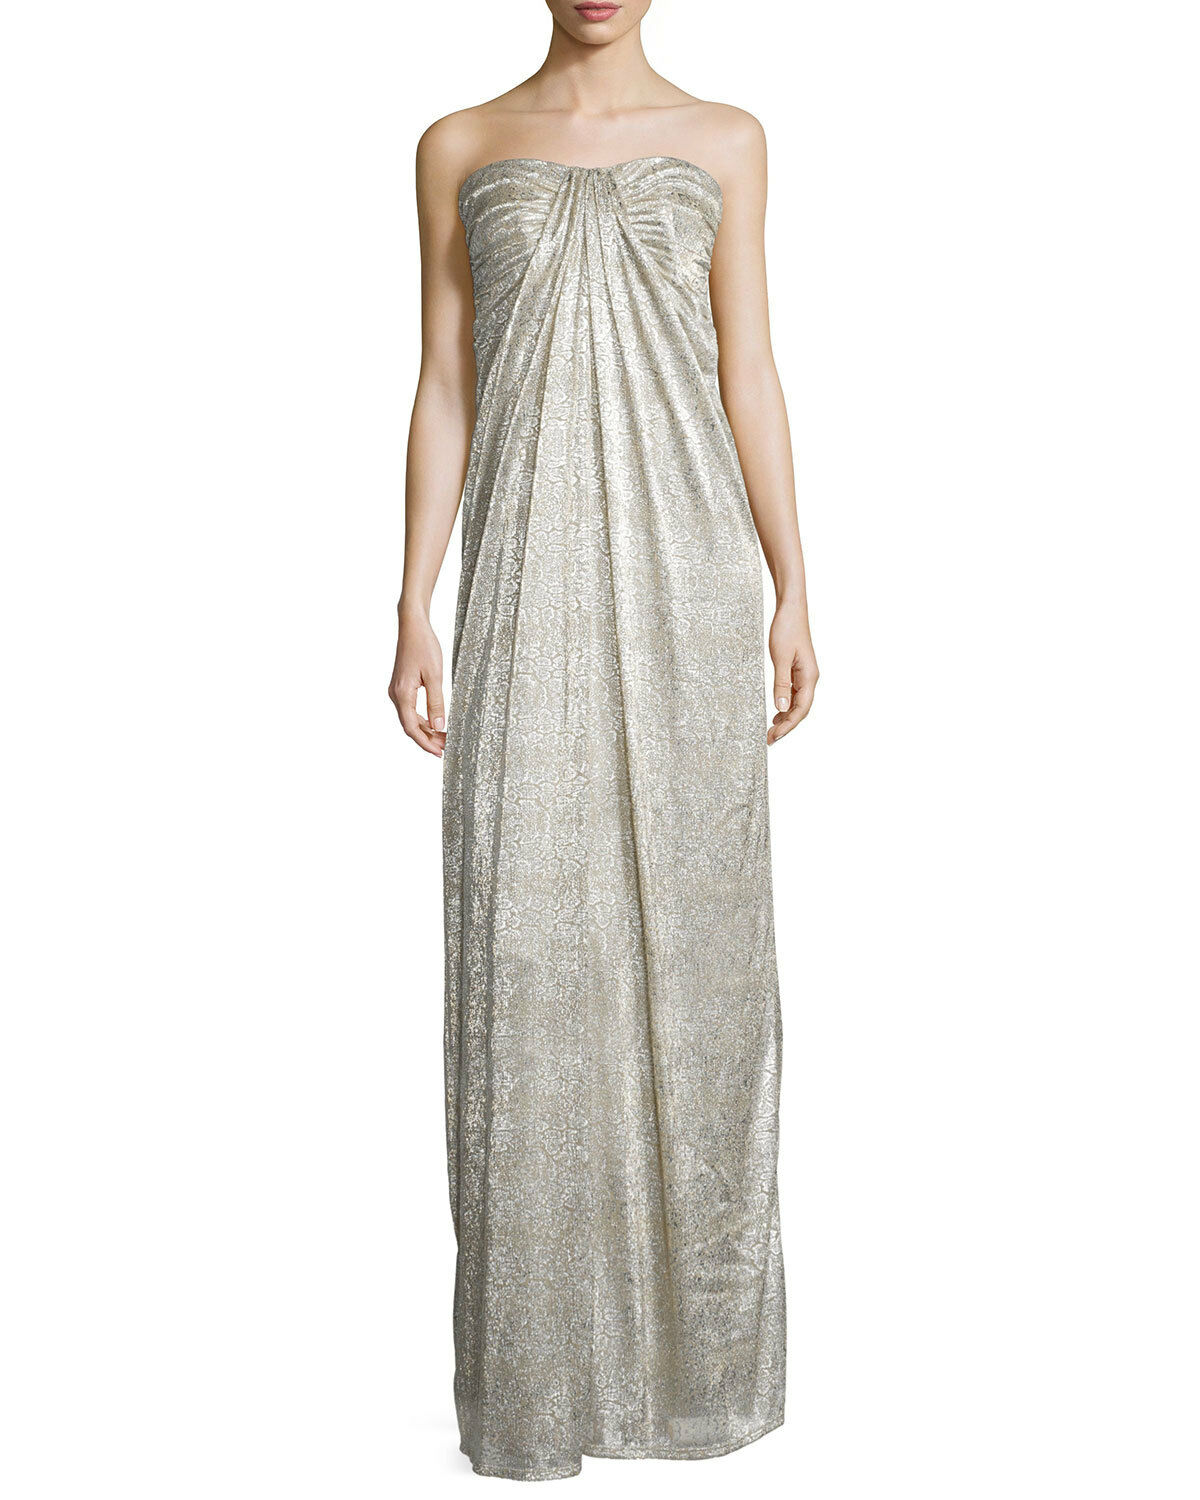 NEW LAUNDRY by SHELLI SEGAL Metallic Jacquard Strapless GOWN SIZE 6  325 NUDE